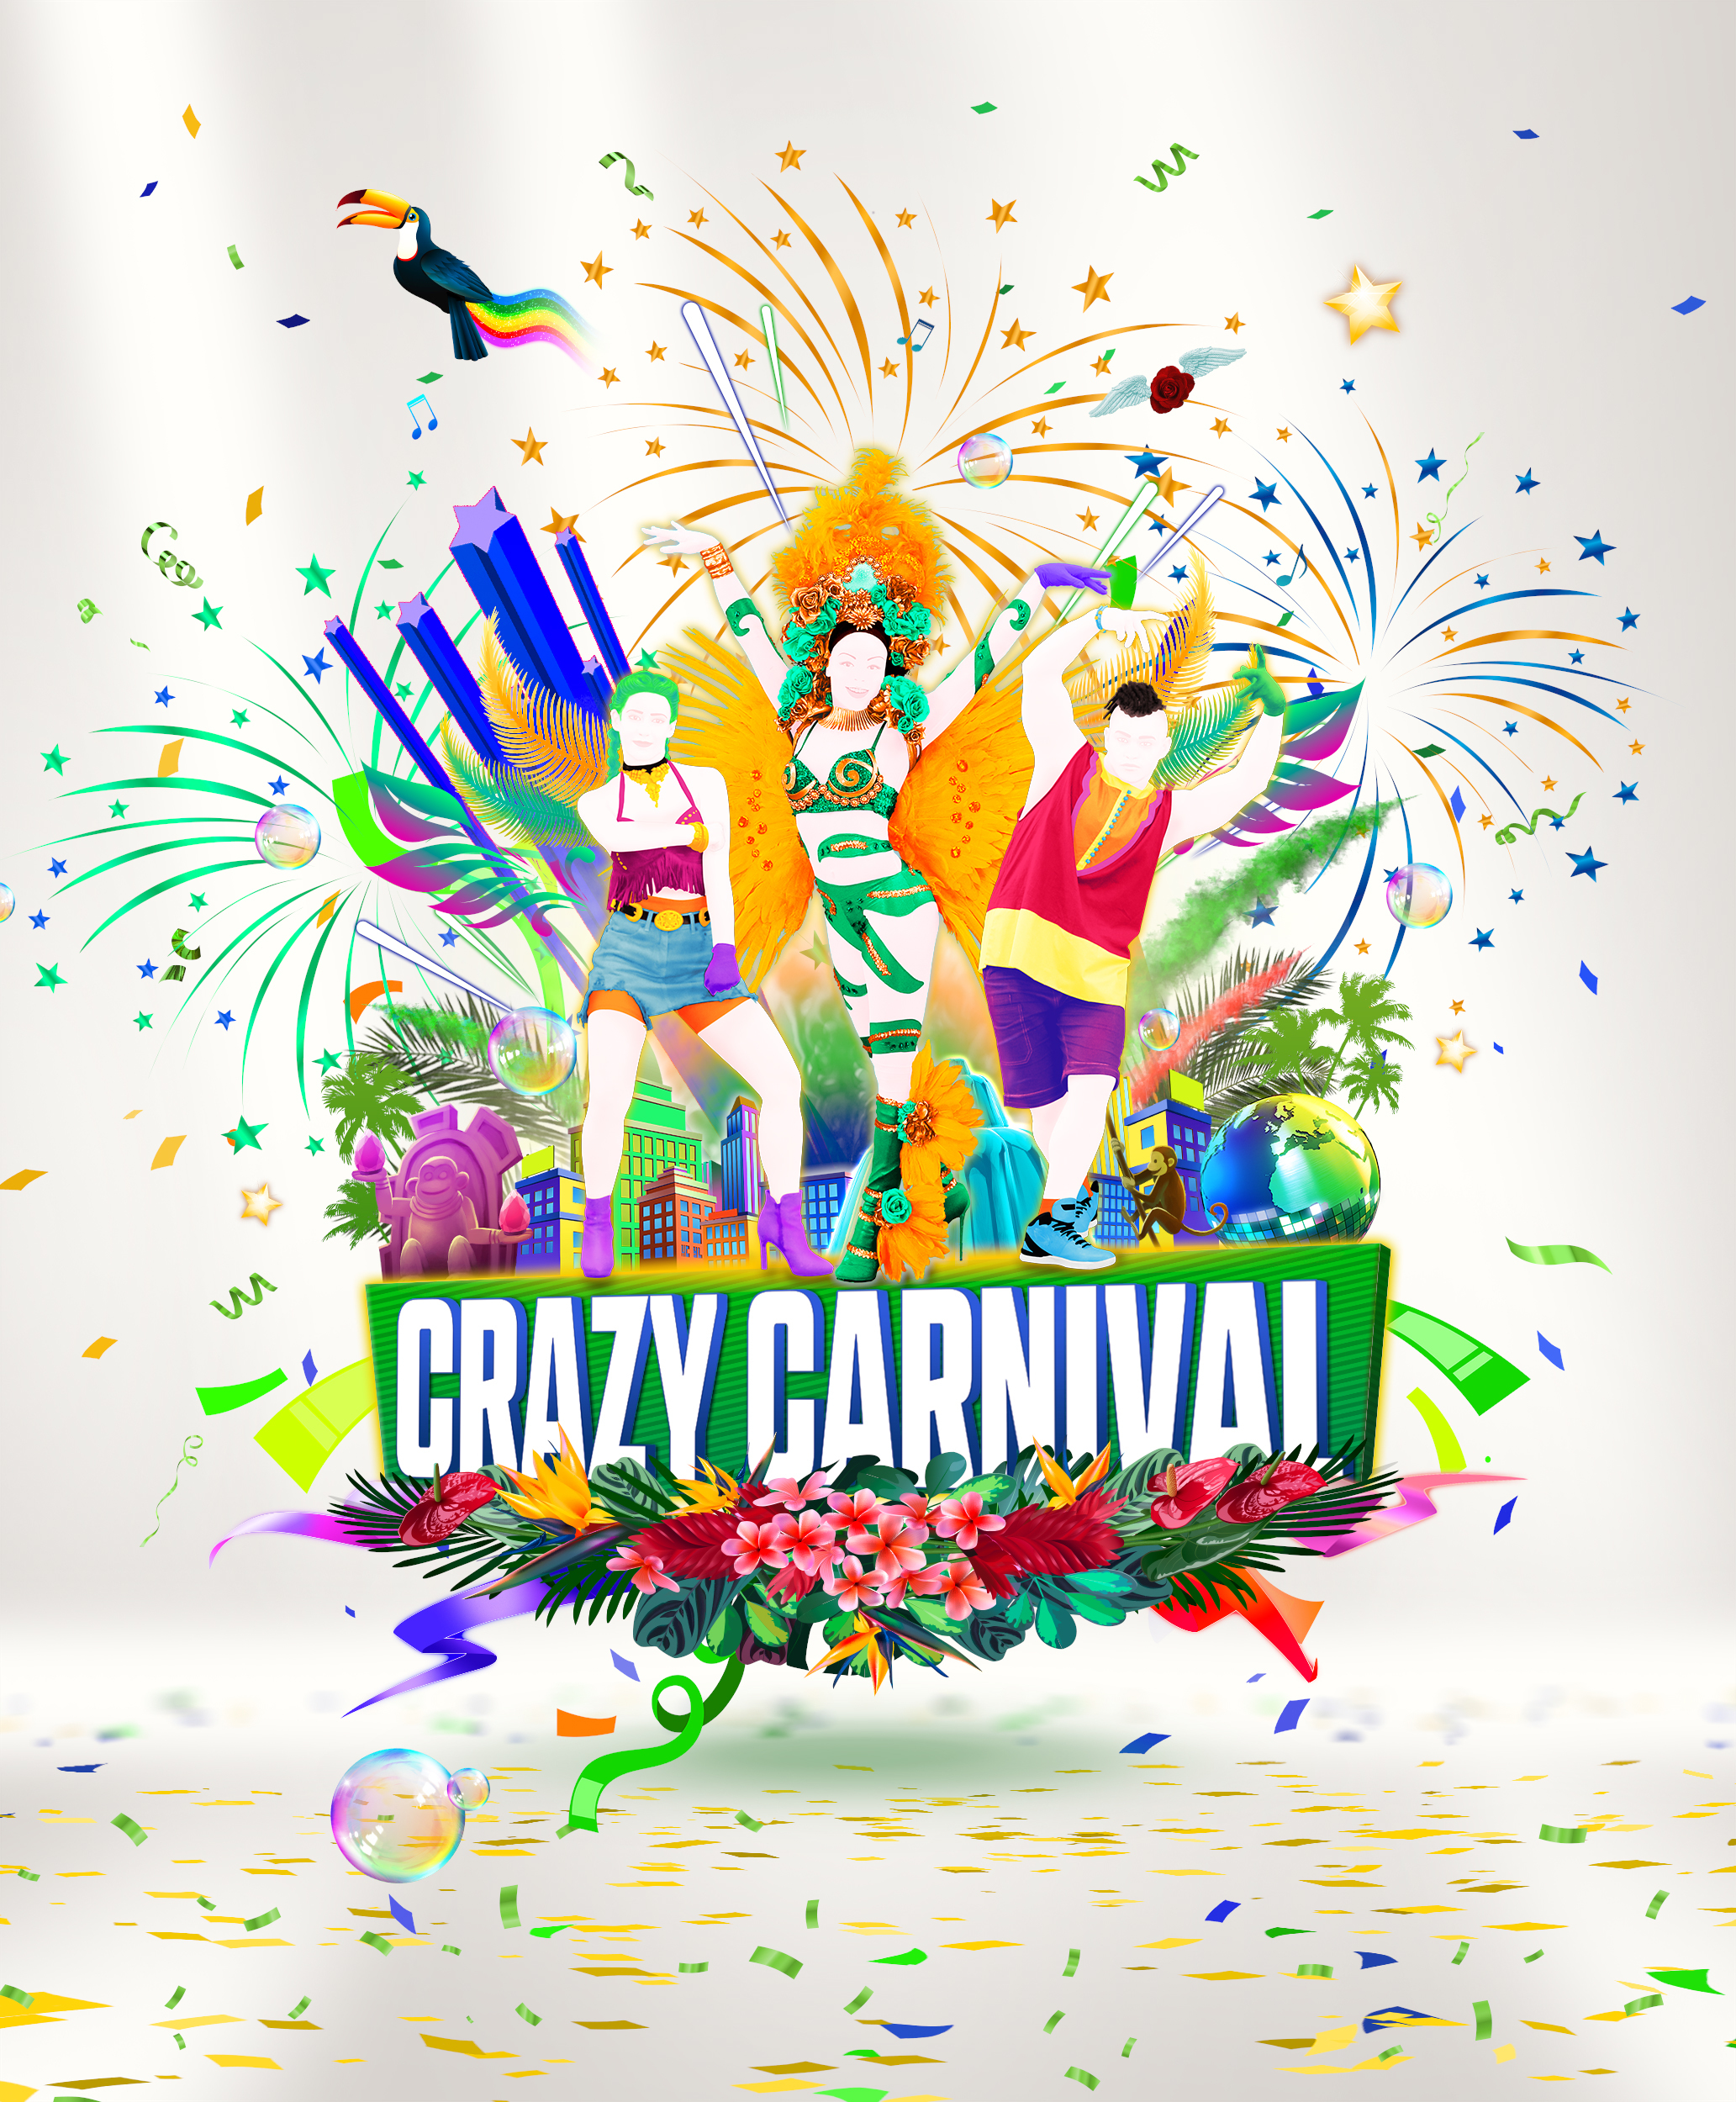 The Crazy Carnival update has landed in Just Dance 2019